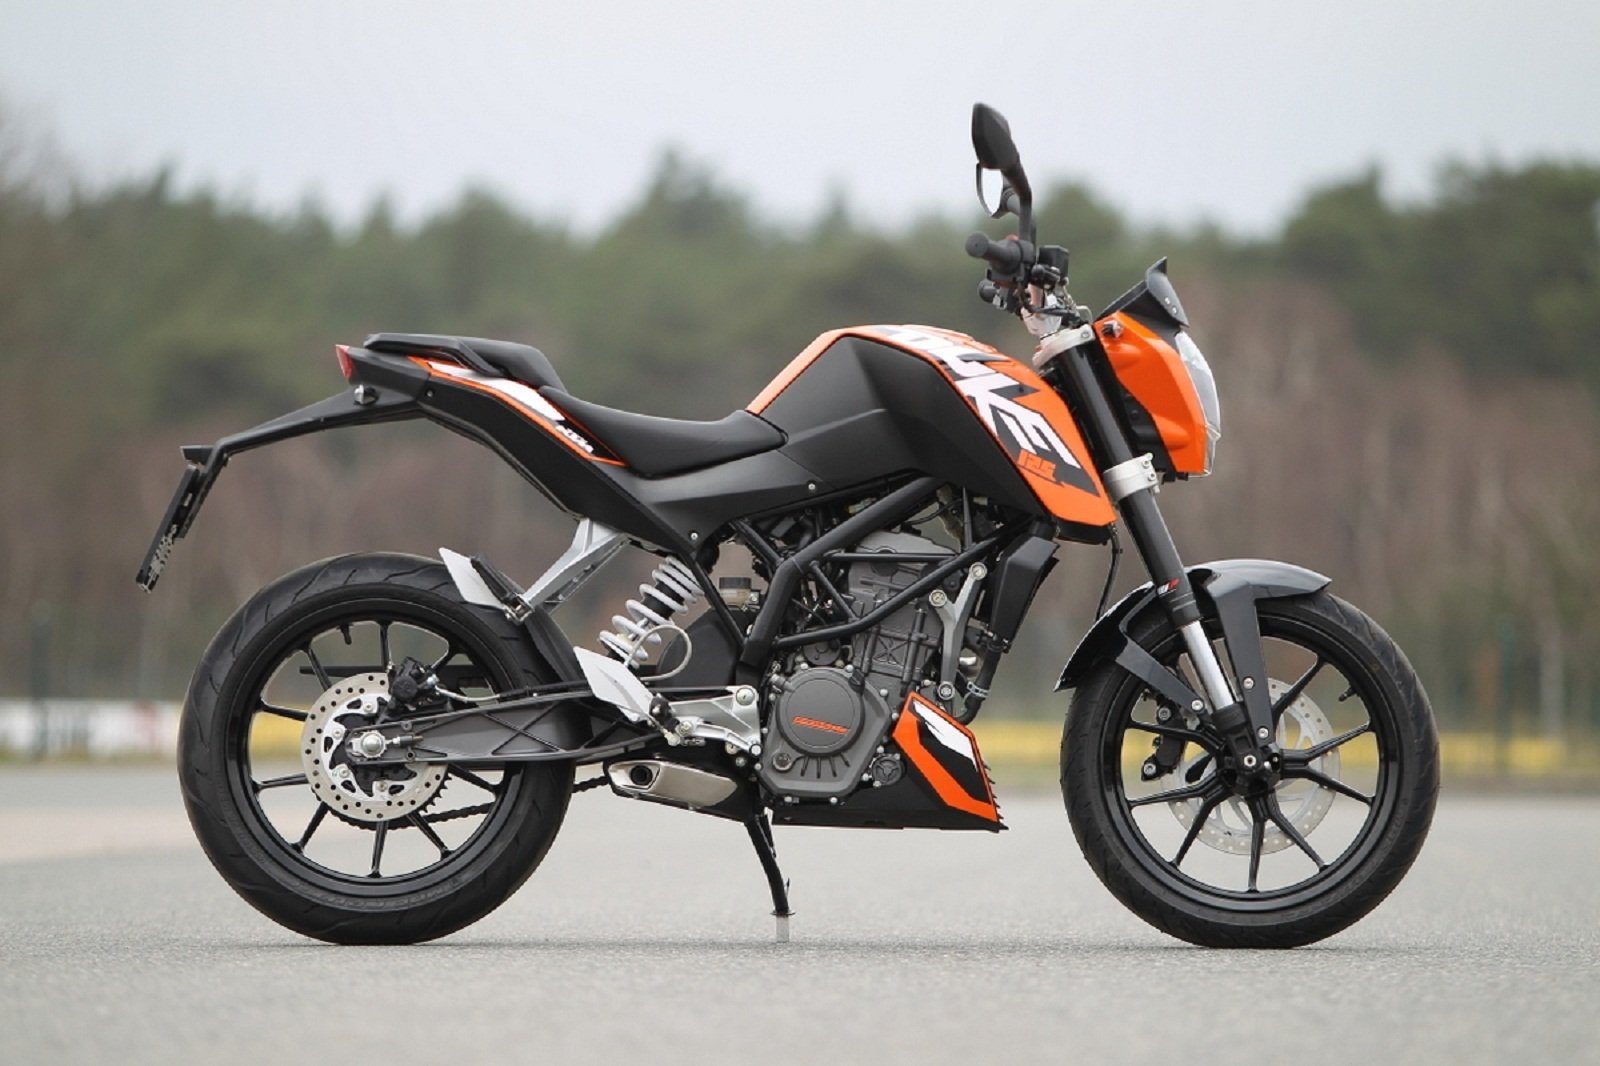 2012 ktm 125 duke picture 436567 motorcycle review. Black Bedroom Furniture Sets. Home Design Ideas